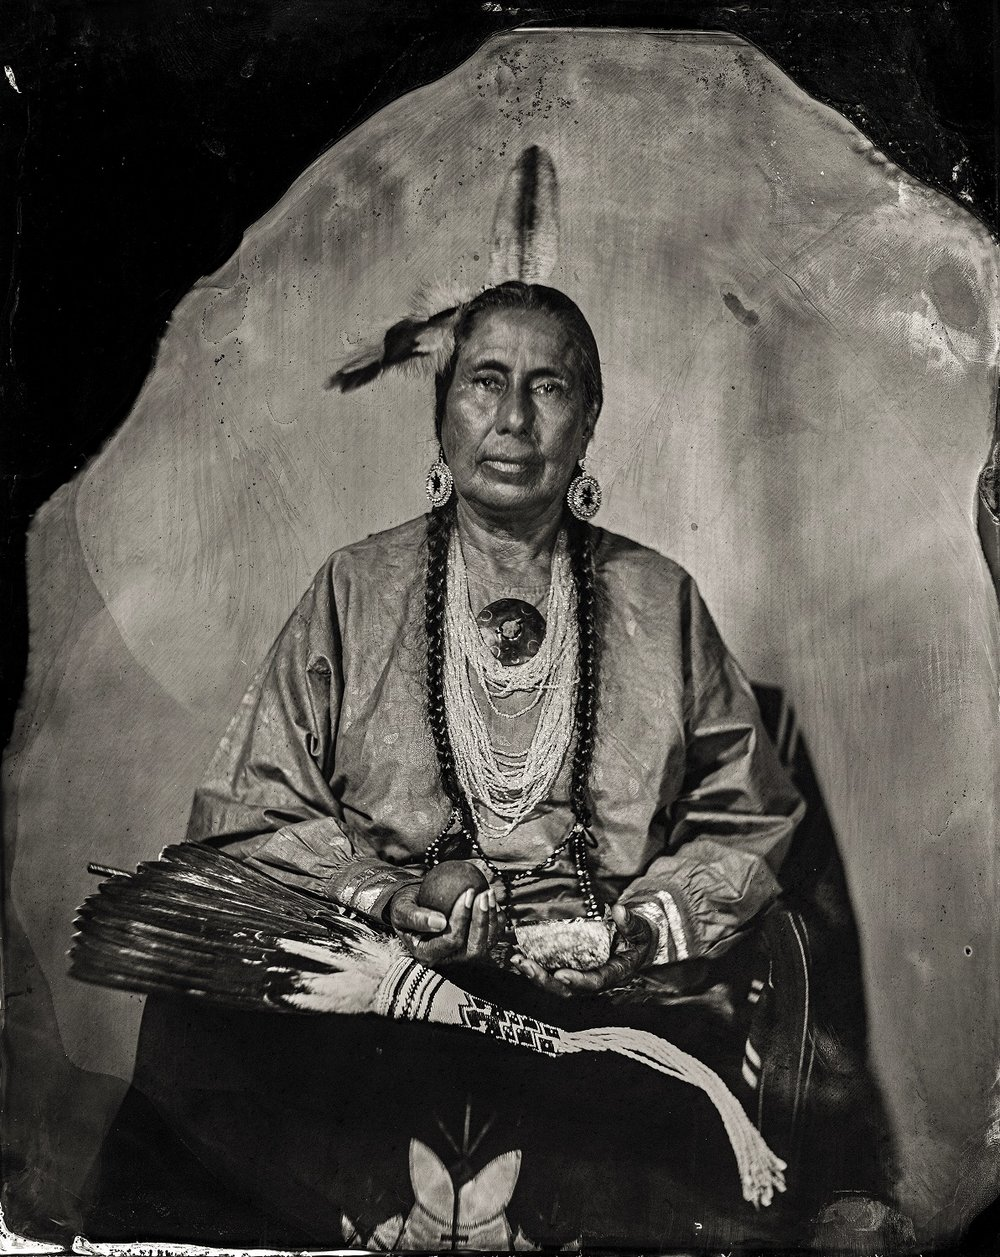 Casey Camp Horinek, citizen of Ponca Tribe of Oklahoma, 2016